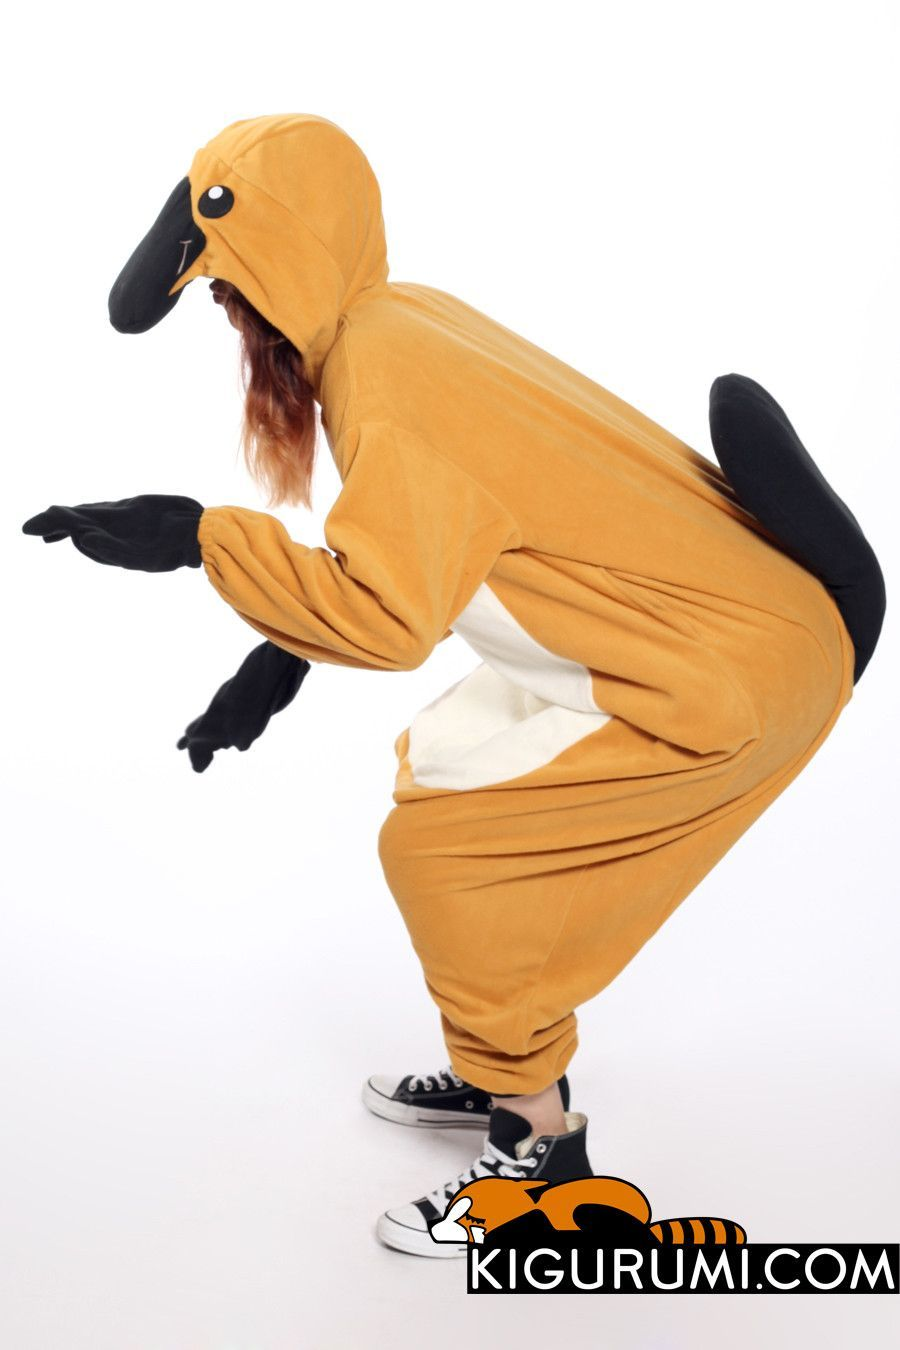 Platypus Kigurumi Onesie Kigurumi.com Whats Your Spirit Animal fb1551fba